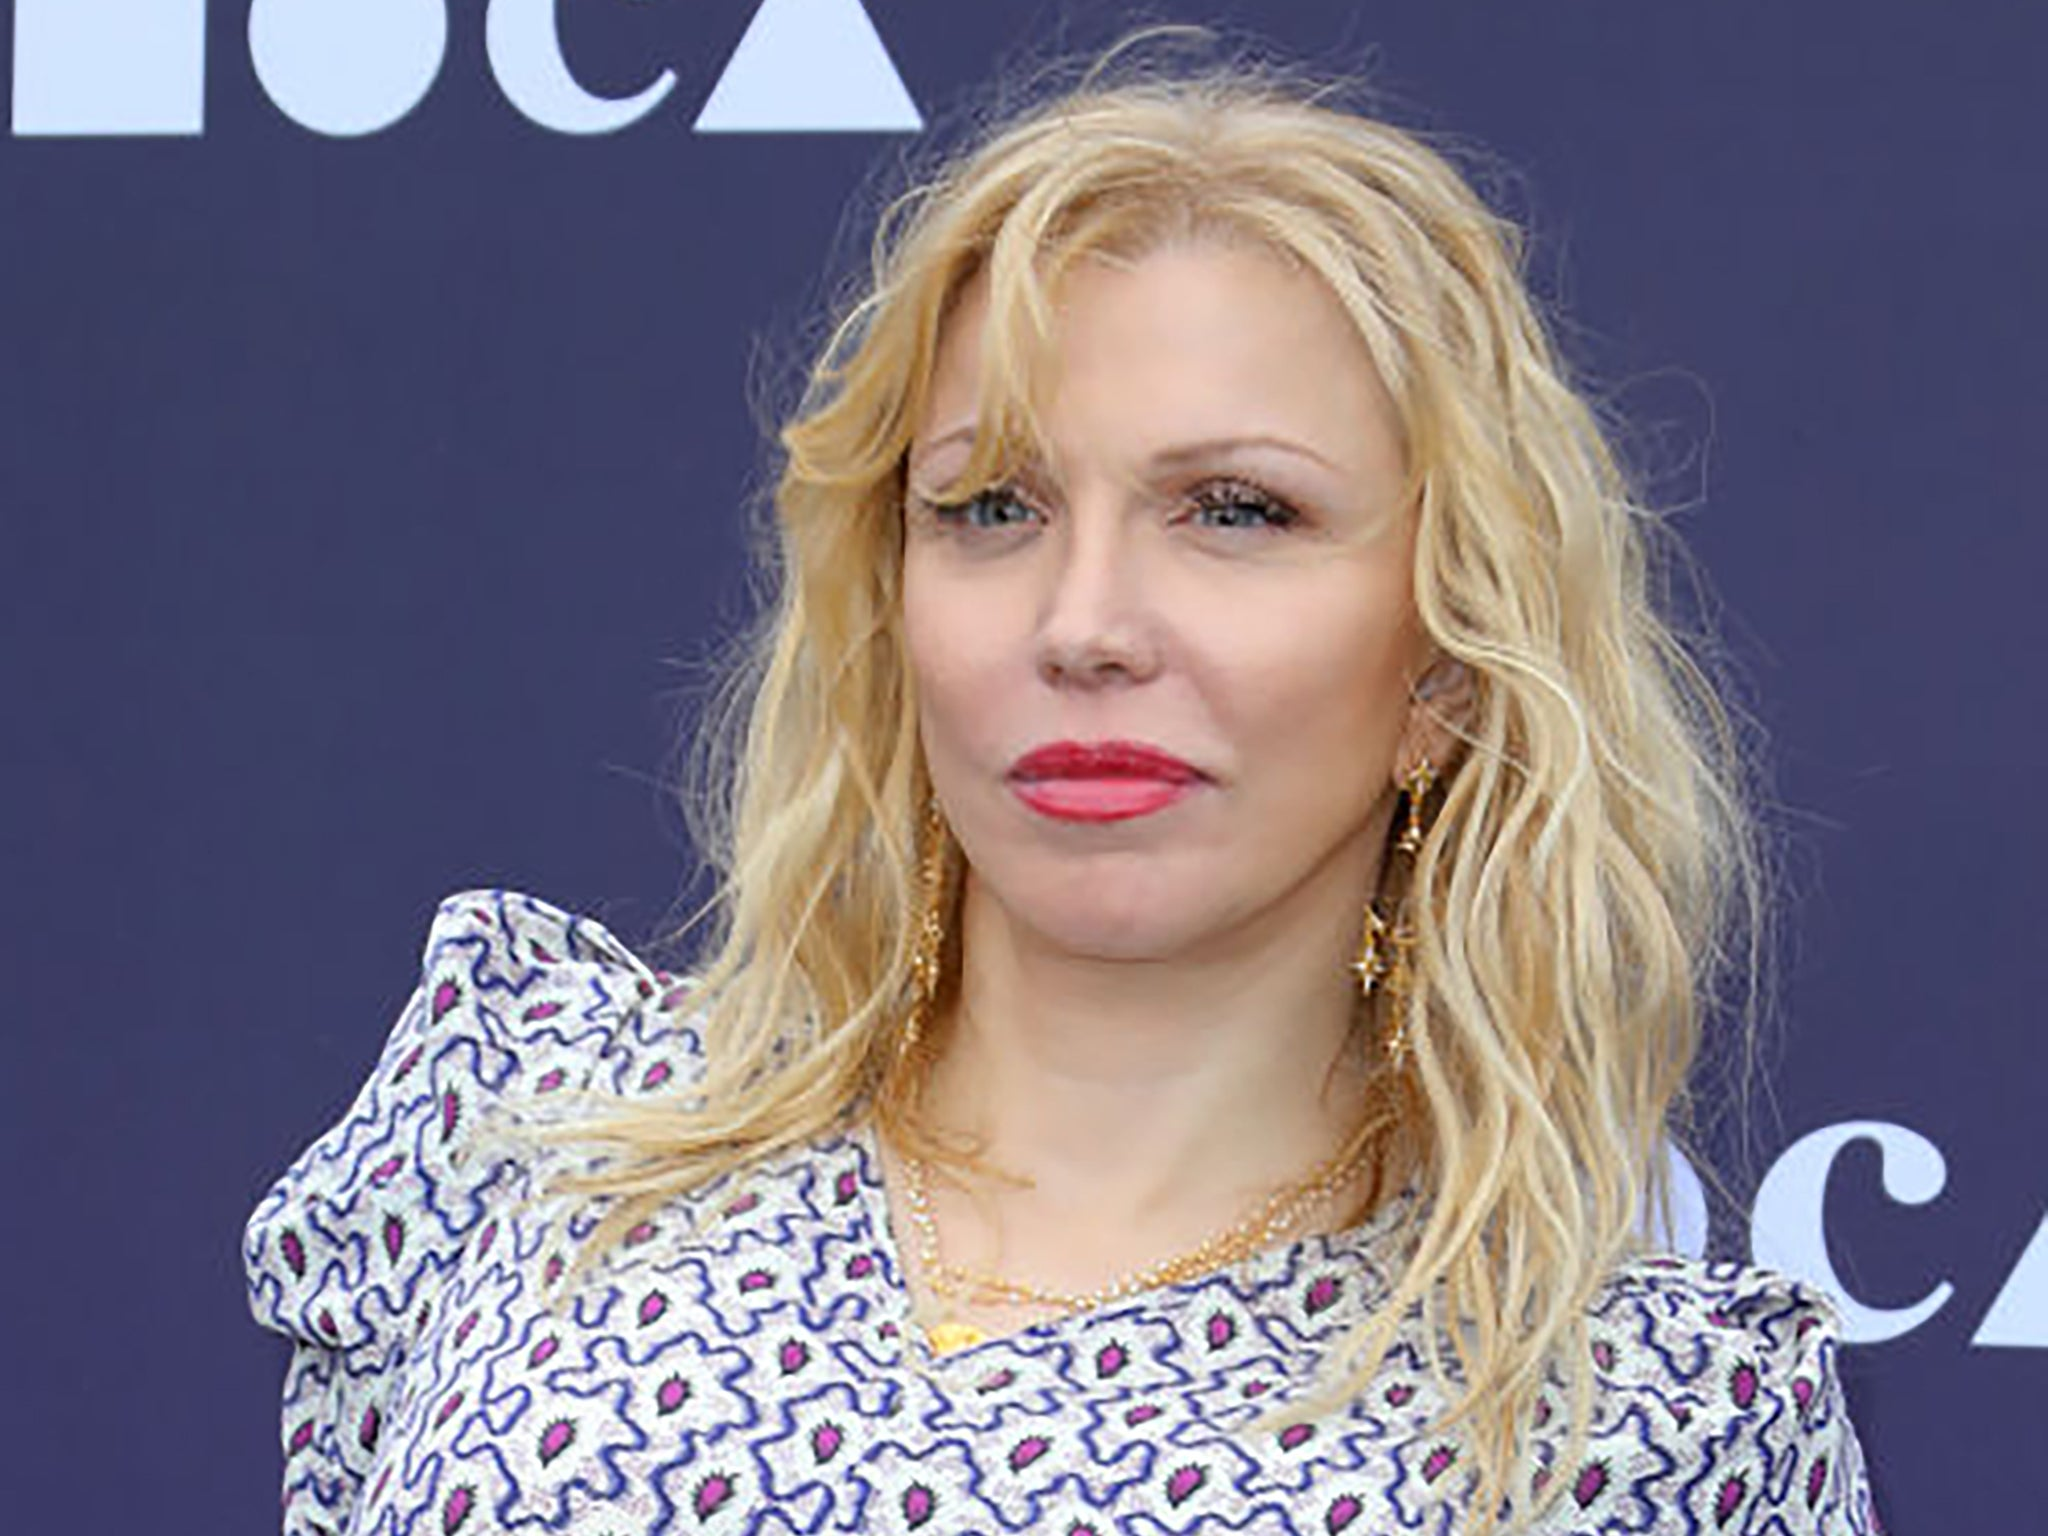 Courtney Love says she and 'wealthy friends' have had 'elitist' access to Covid tests for six months